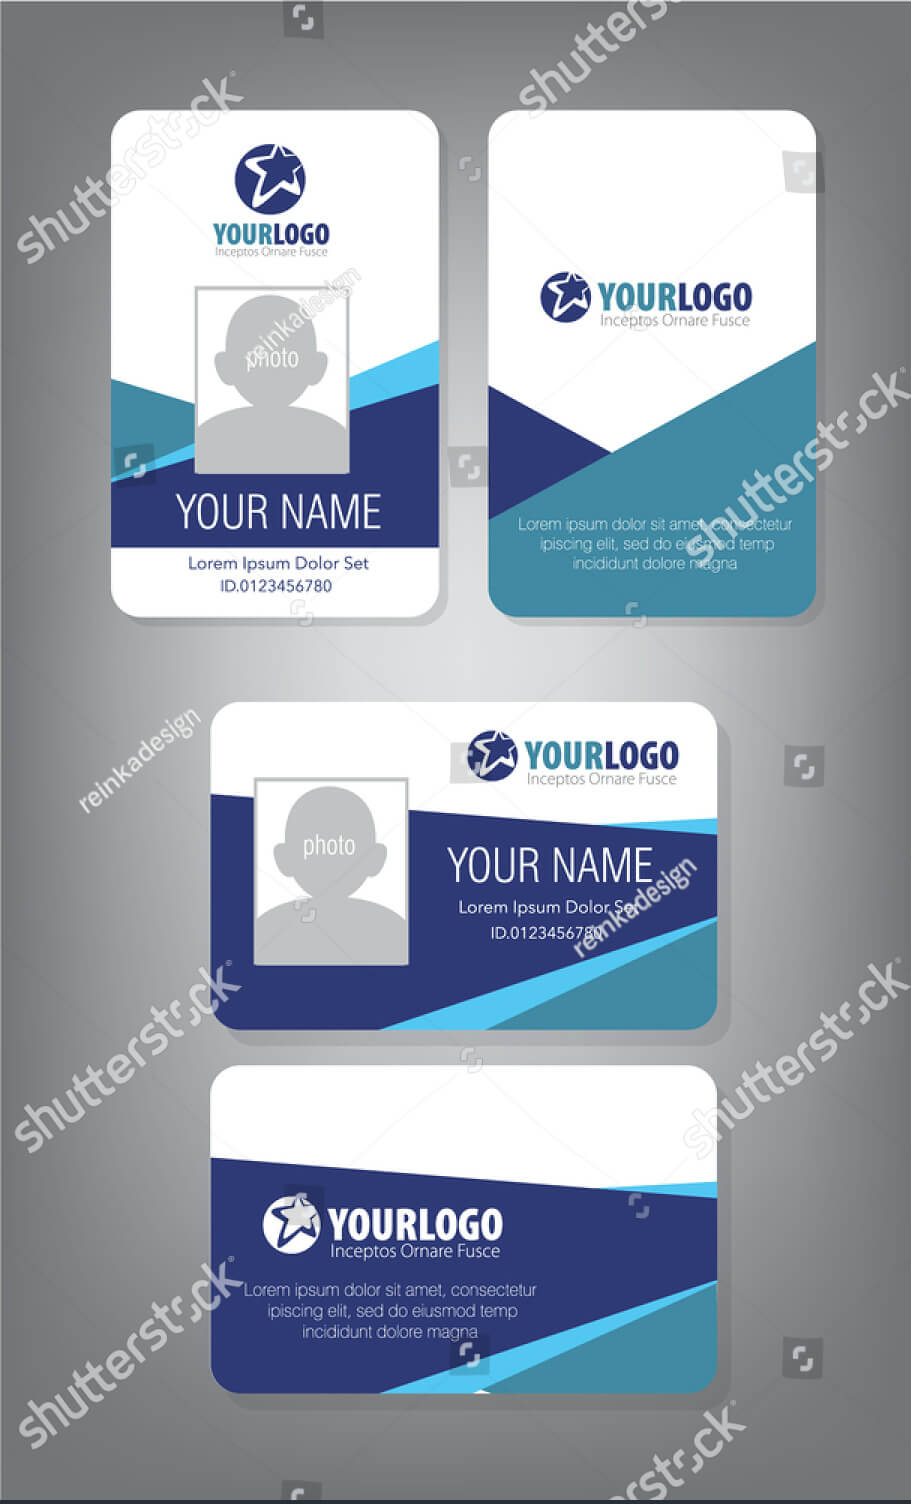 43+ Professional Id Card Designs - Psd, Eps, Ai, Word | Free with regard to Teacher Id Card Template